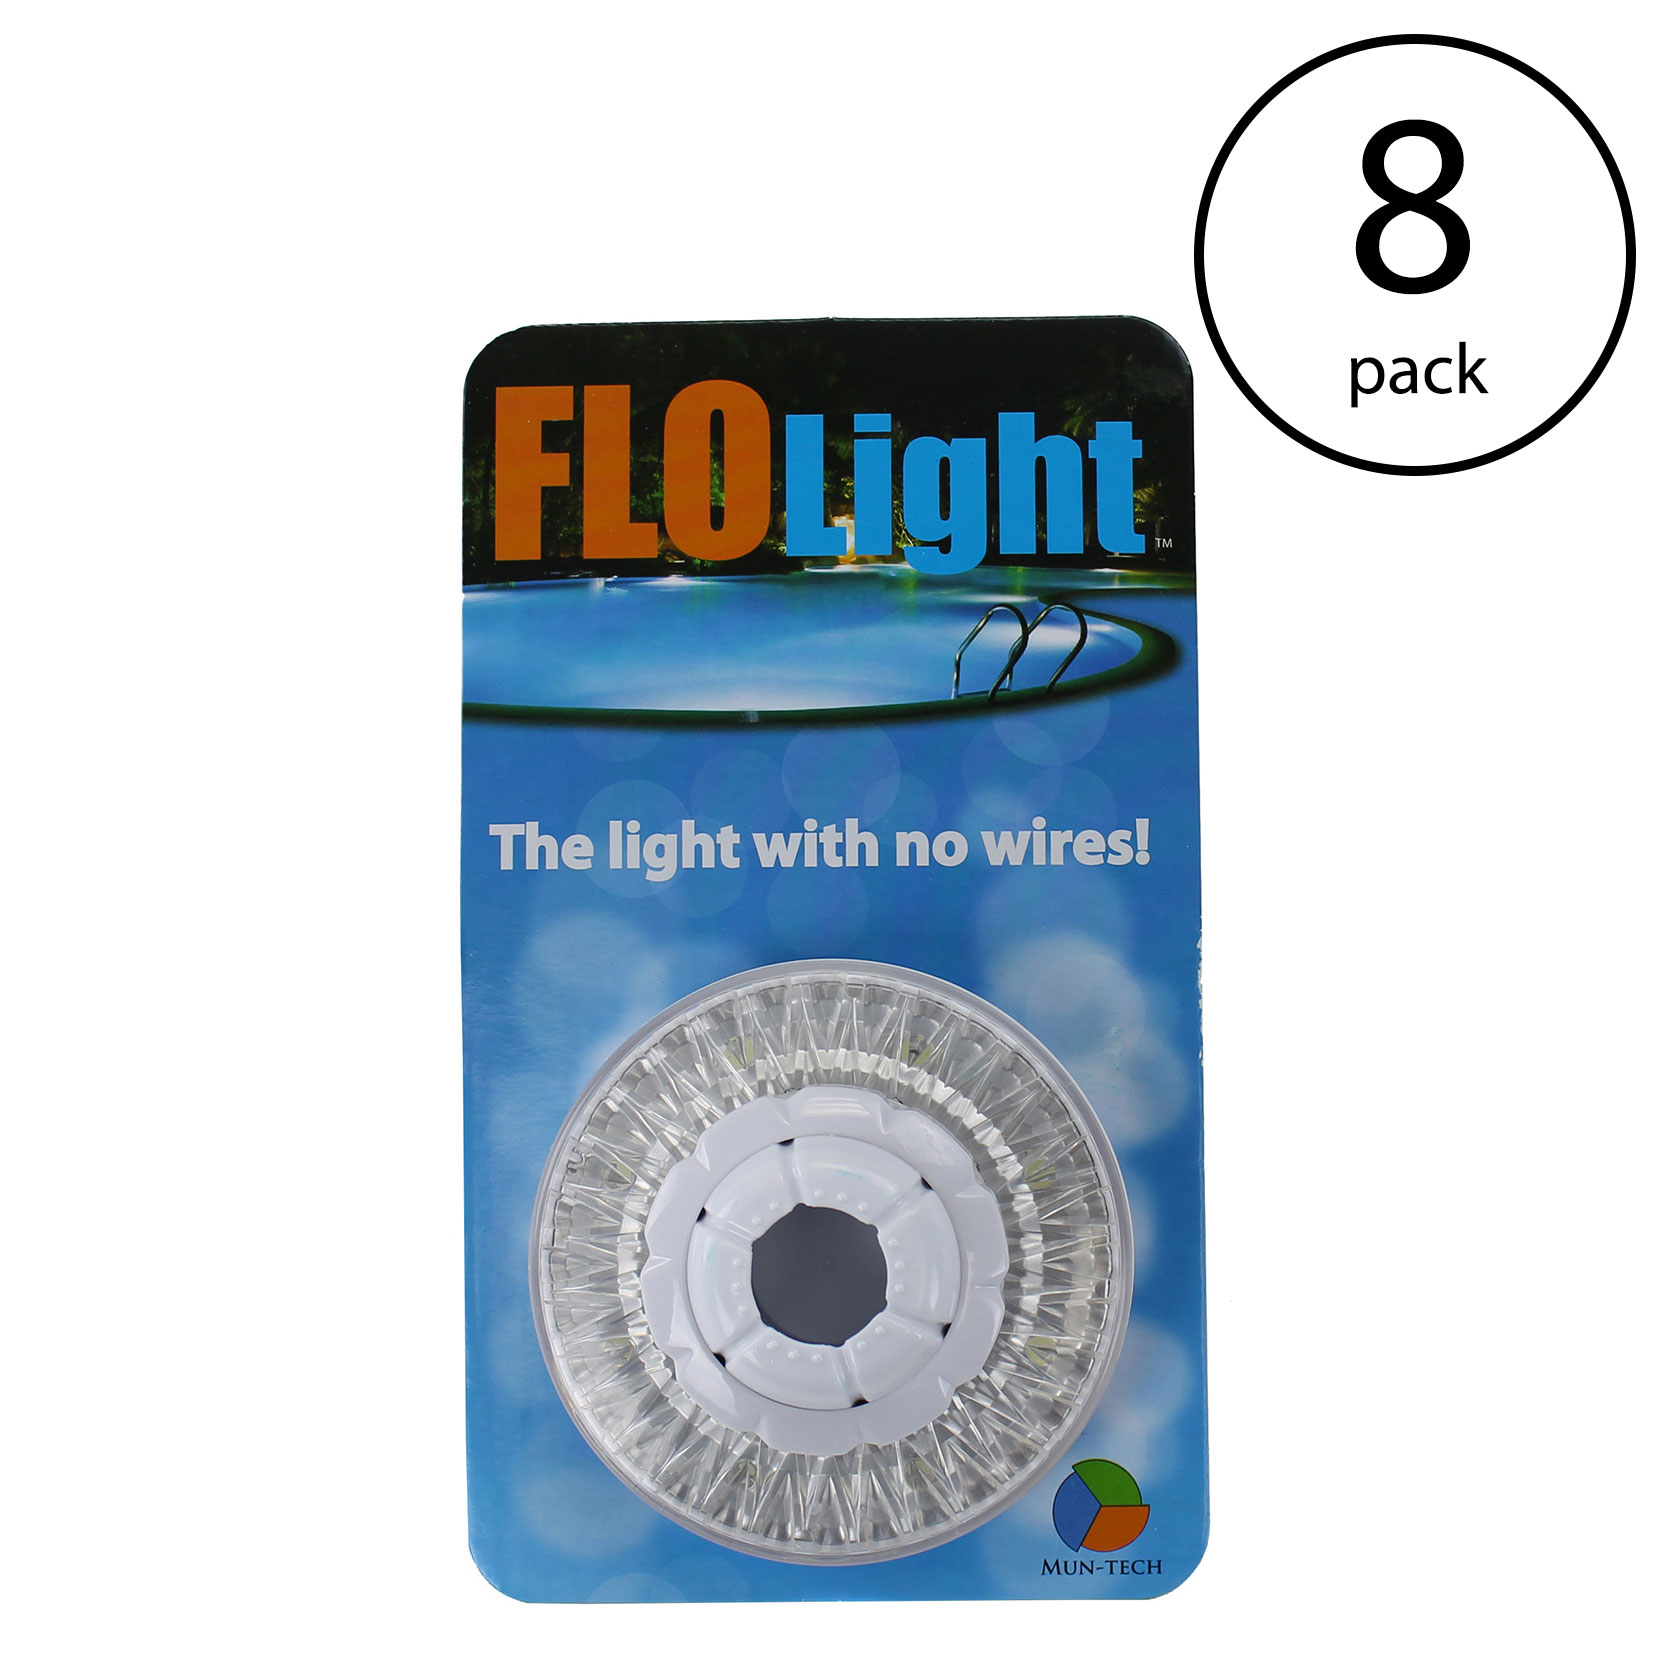 LED Above Ground Swimming Pool Flo Light Wireless Universal FloLight (8 Pack)